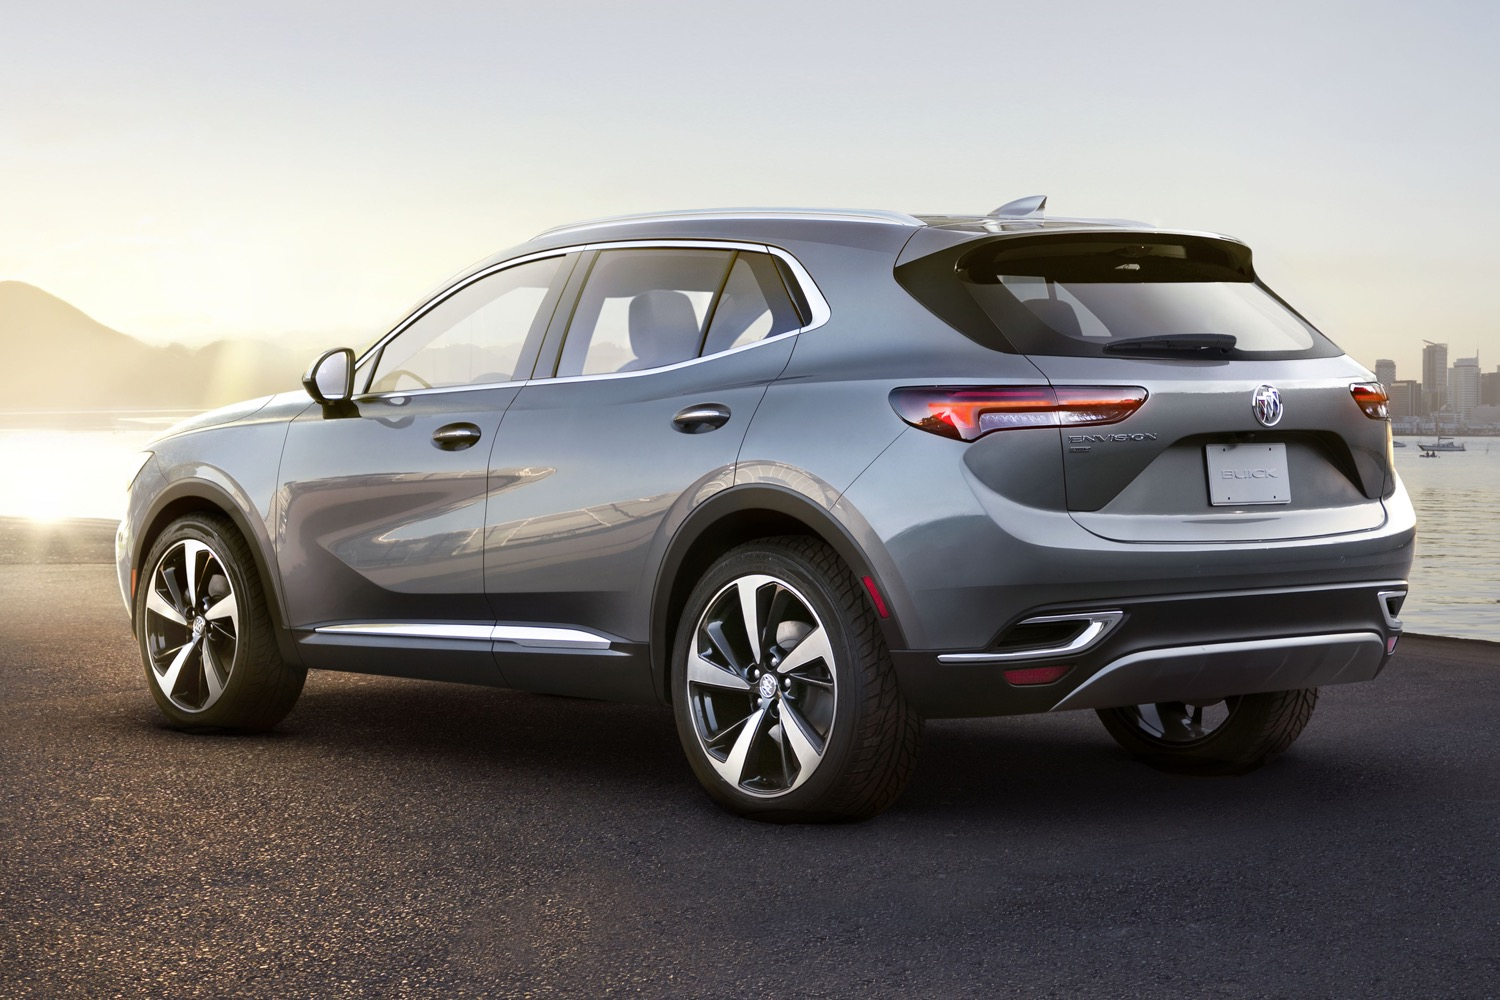 2021 Buick Envision Info, Specs, Wiki | Gm Authority 2022 Buick Envision Cargo Space, Curb Weight, Cost